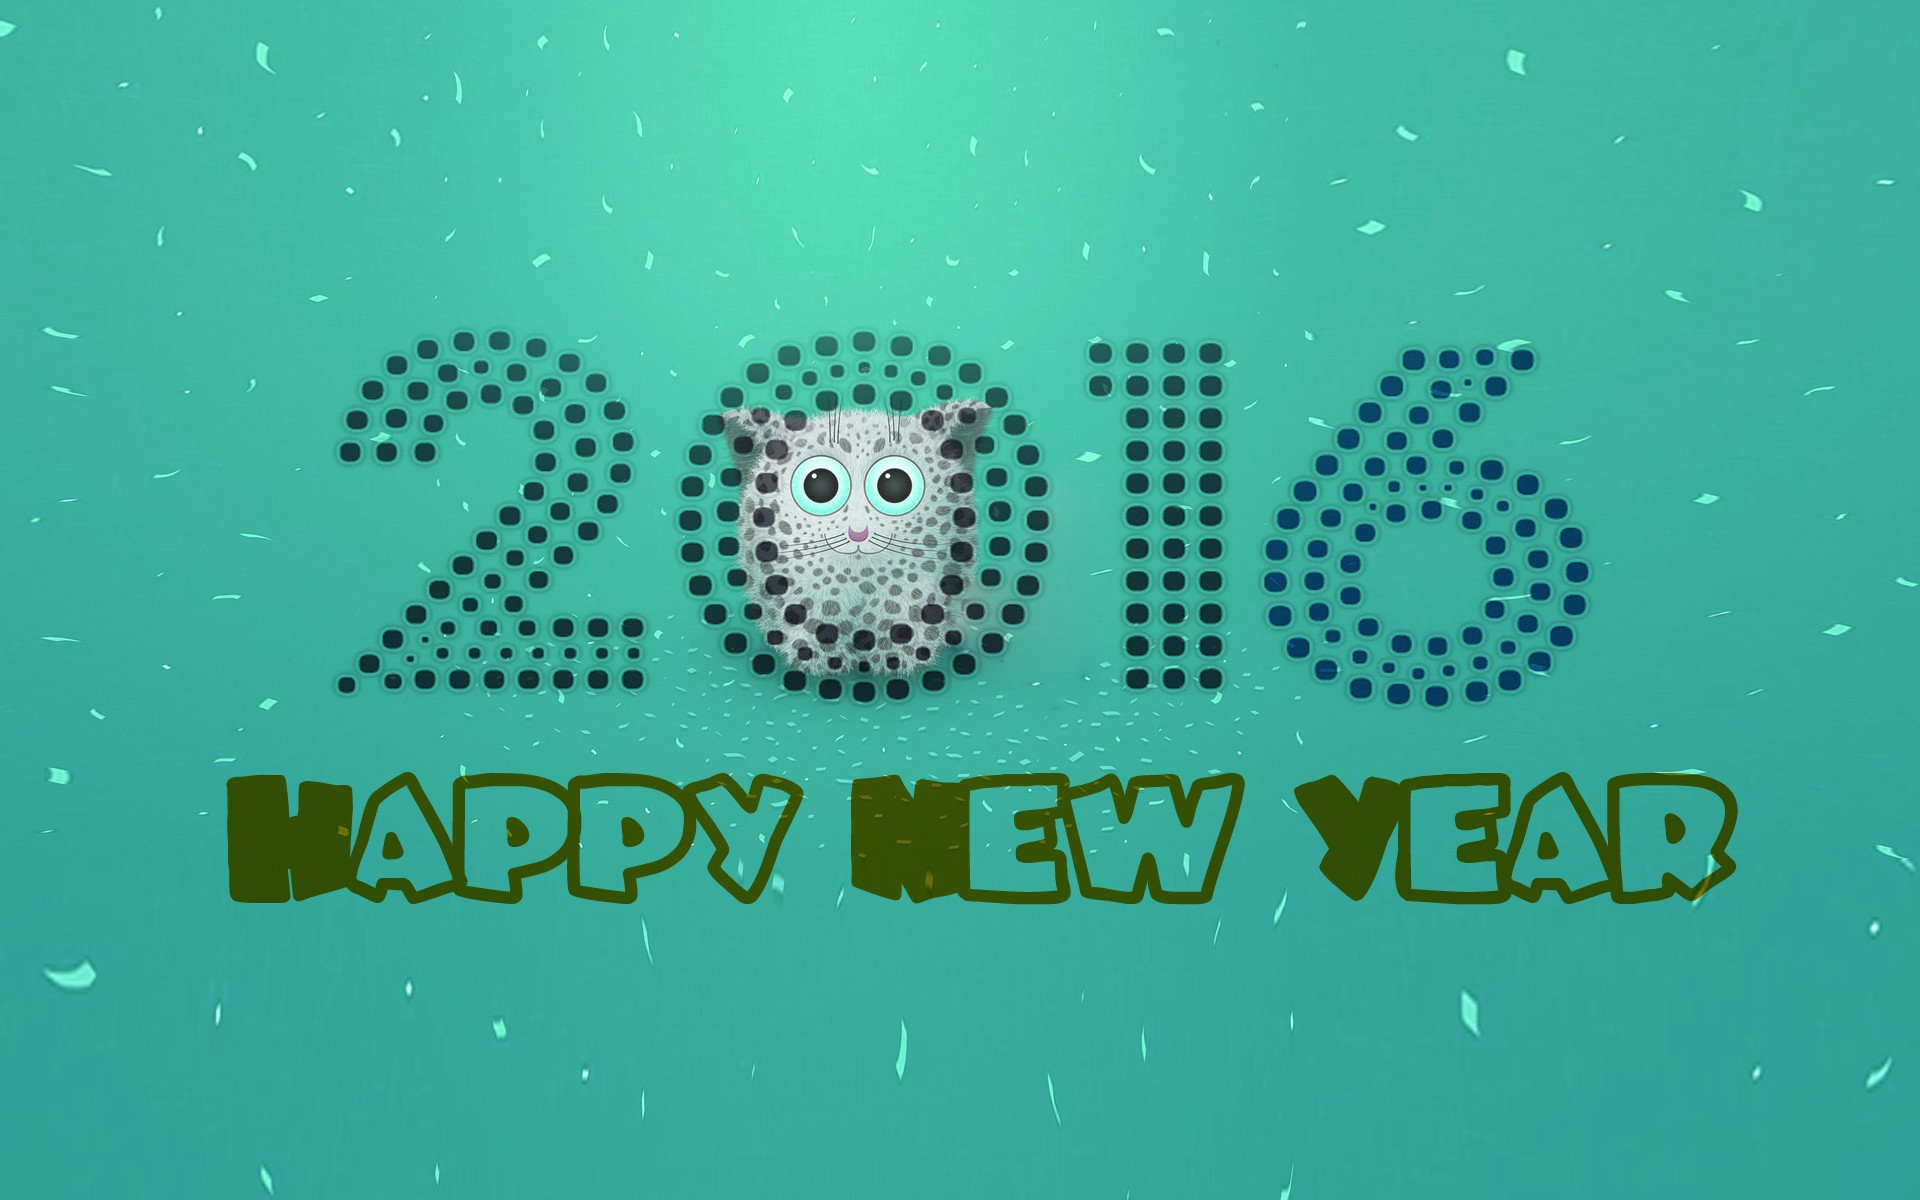 45 Beautiful Happy New Year Wallpapers HD   iDevie 1920x1200